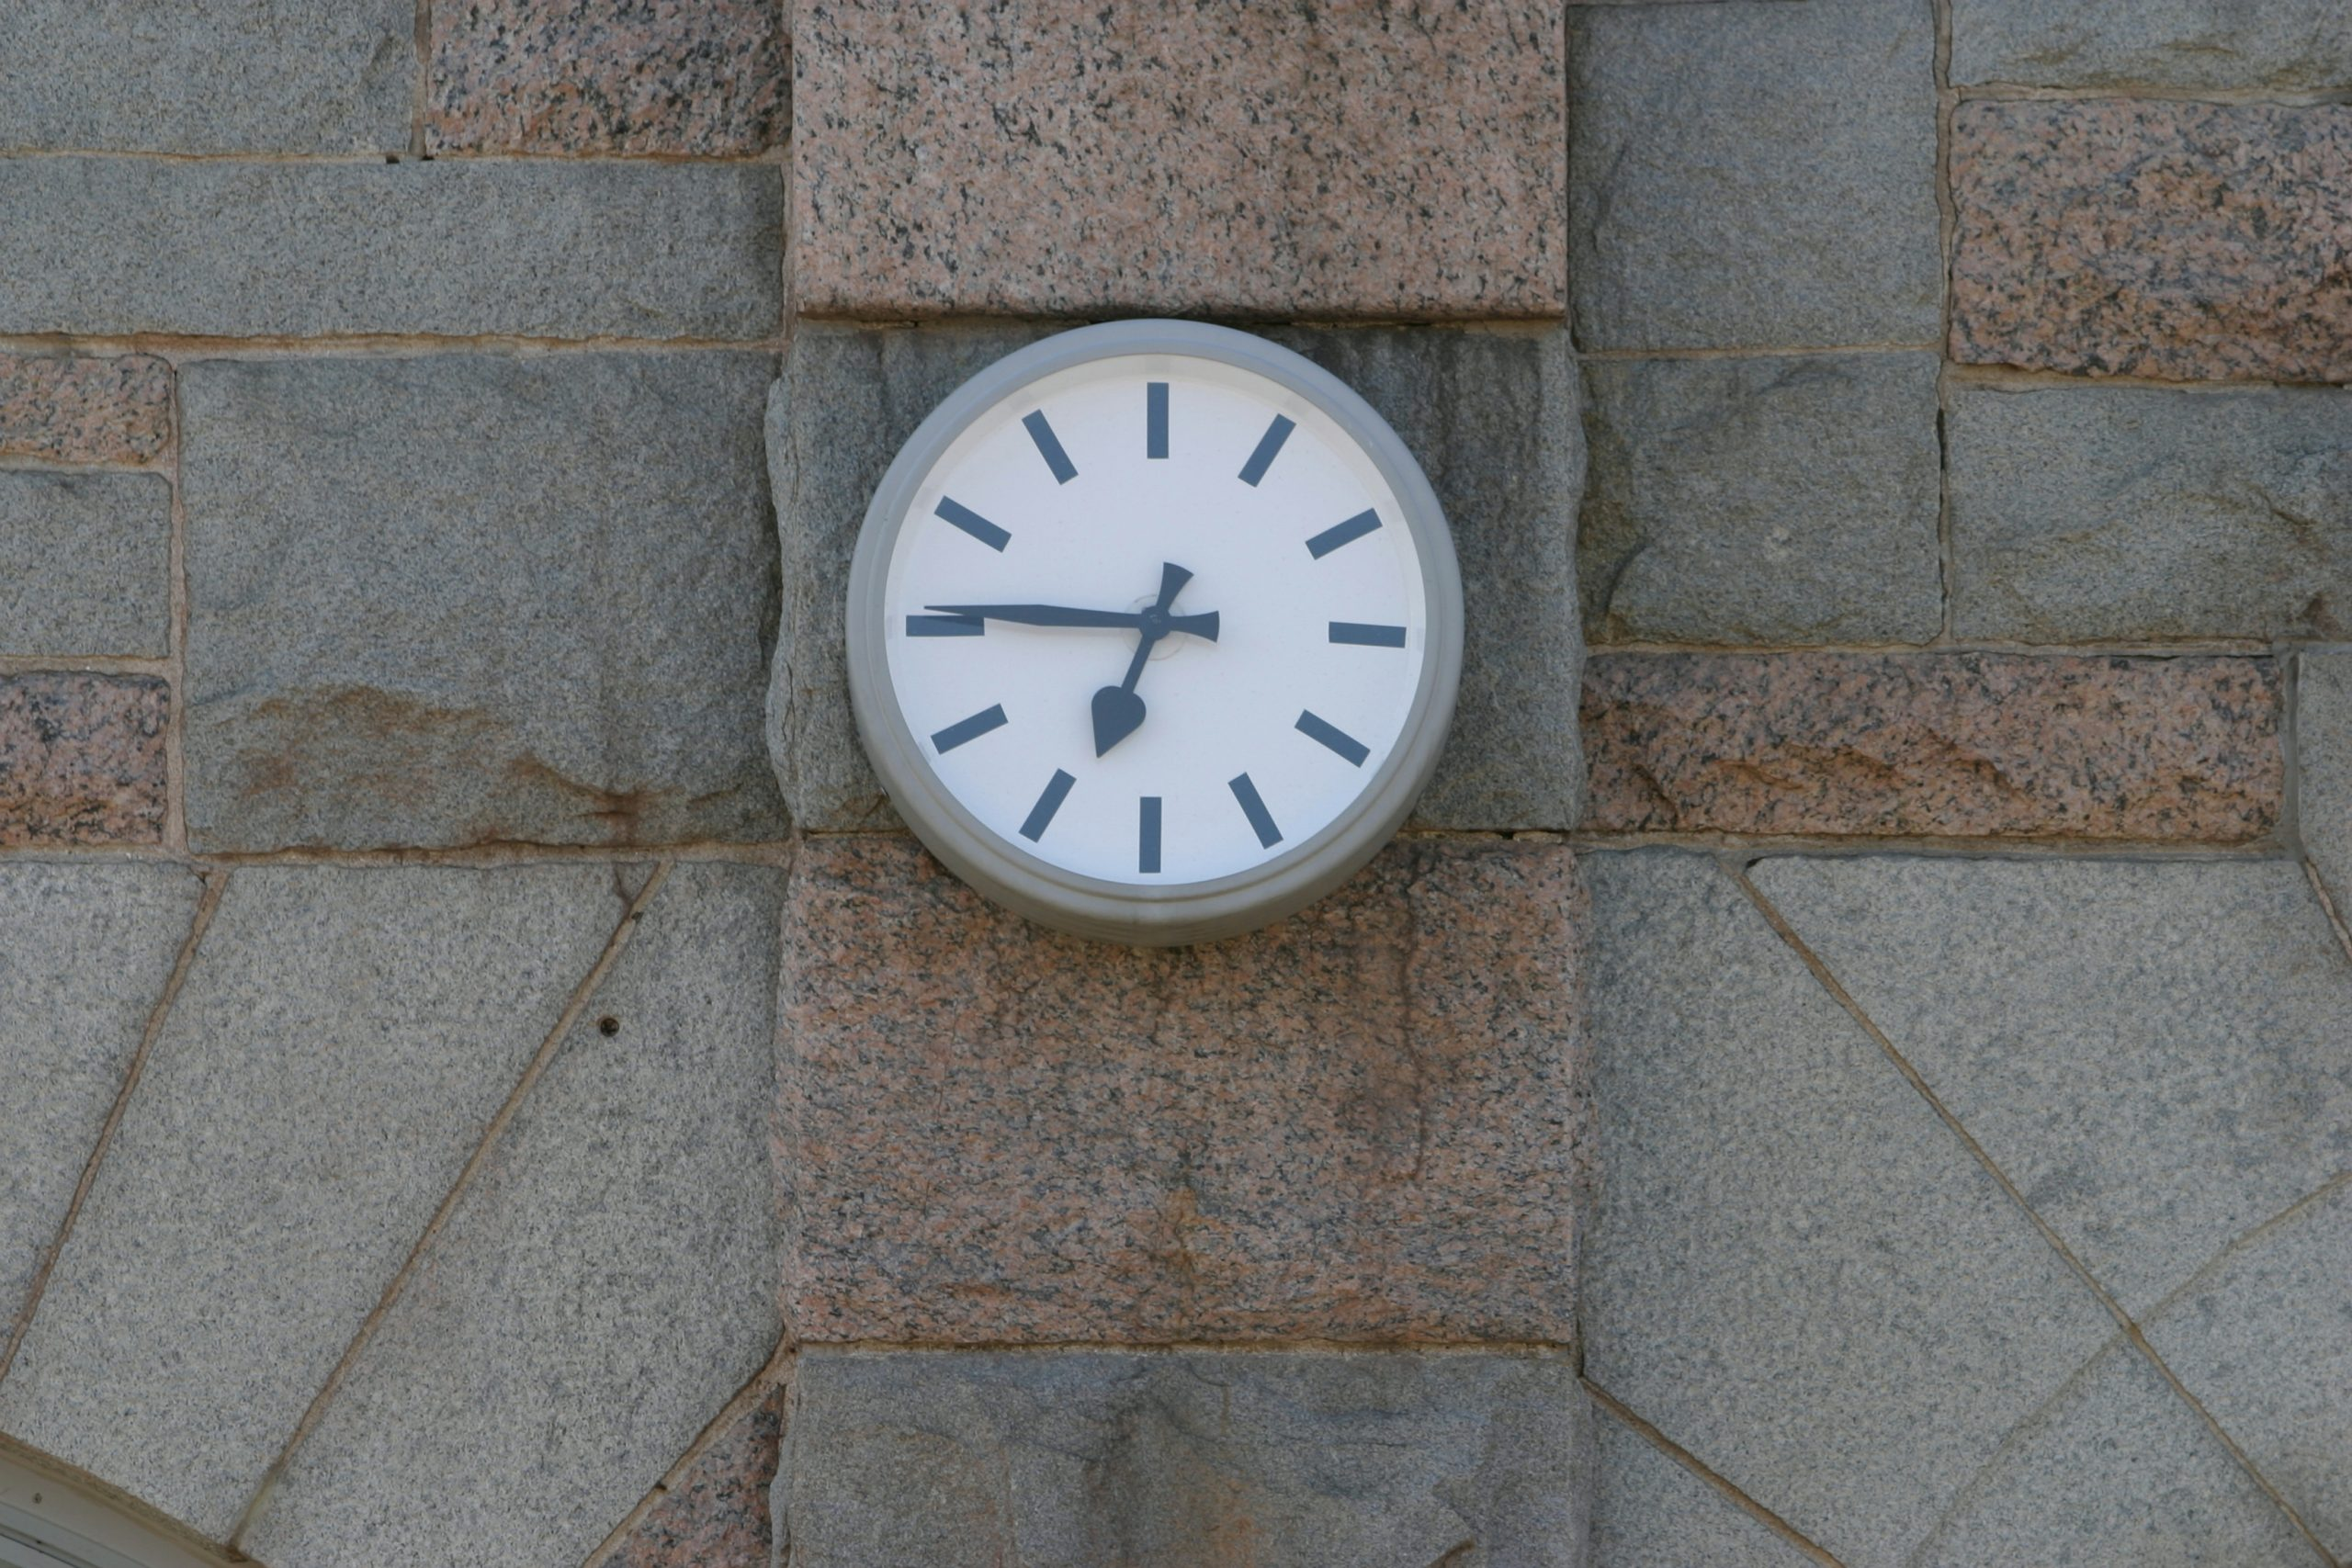 Picture of wall clock. Start on time when packing a household for relocation to Saudi Arabia